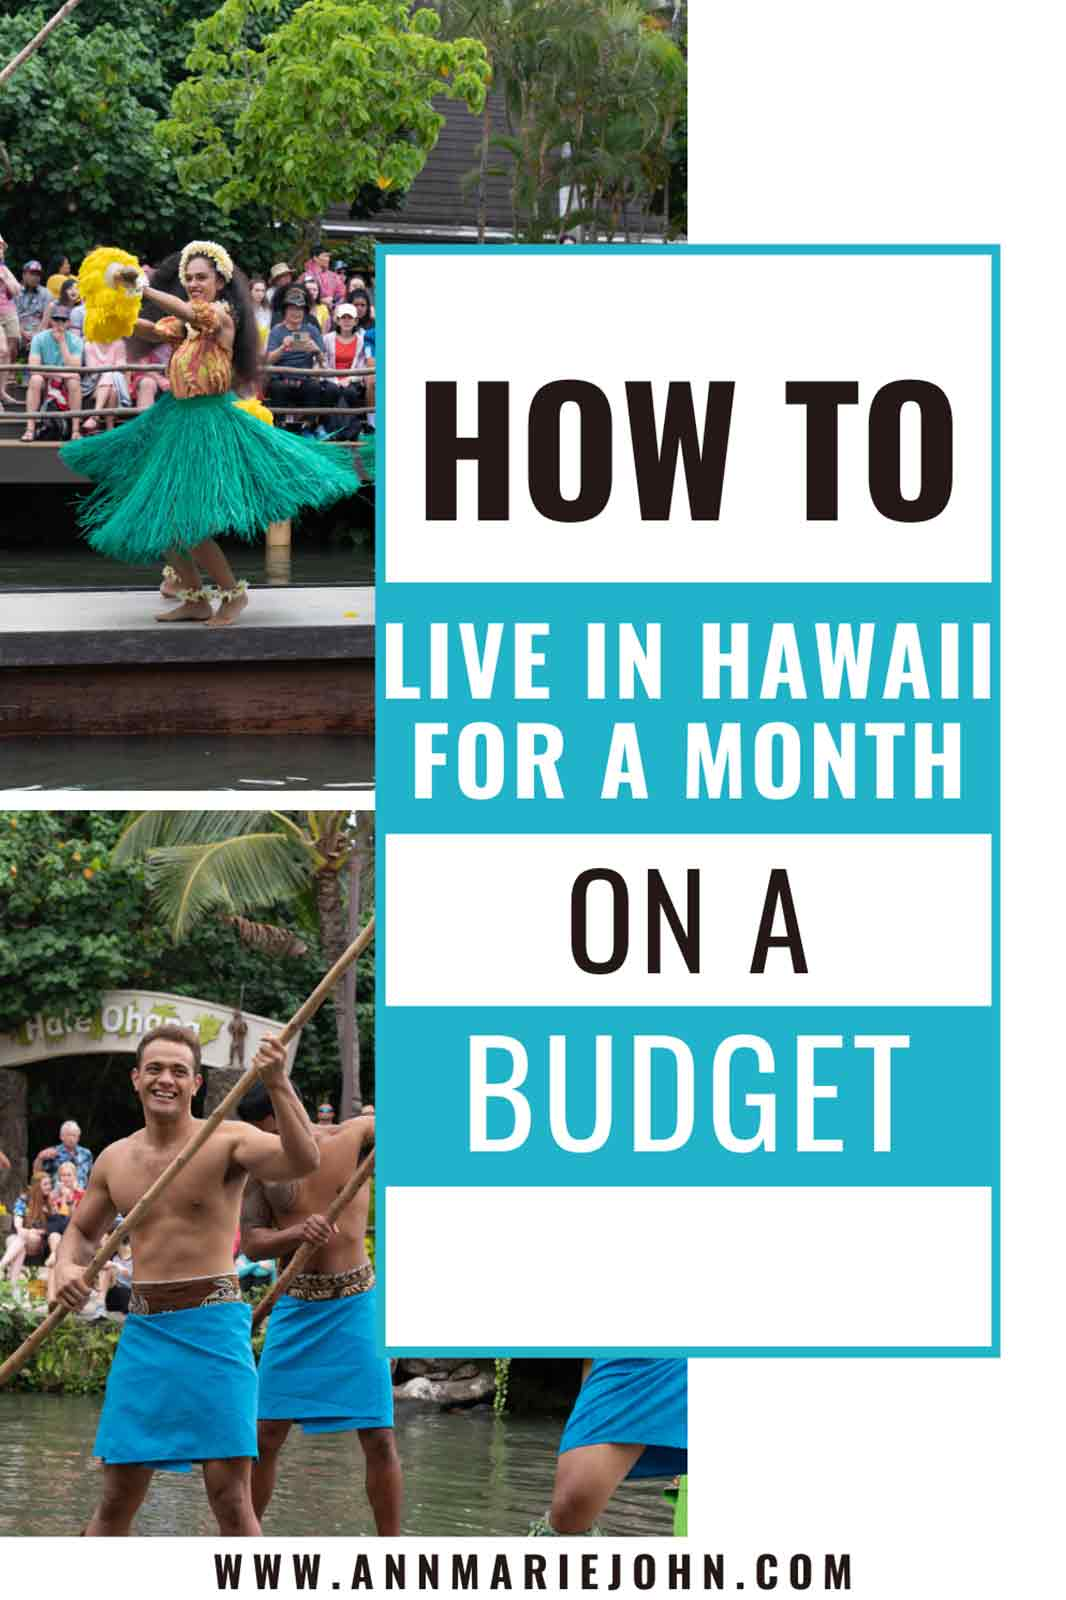 How to Live in Hawaii for a Month on a Budget